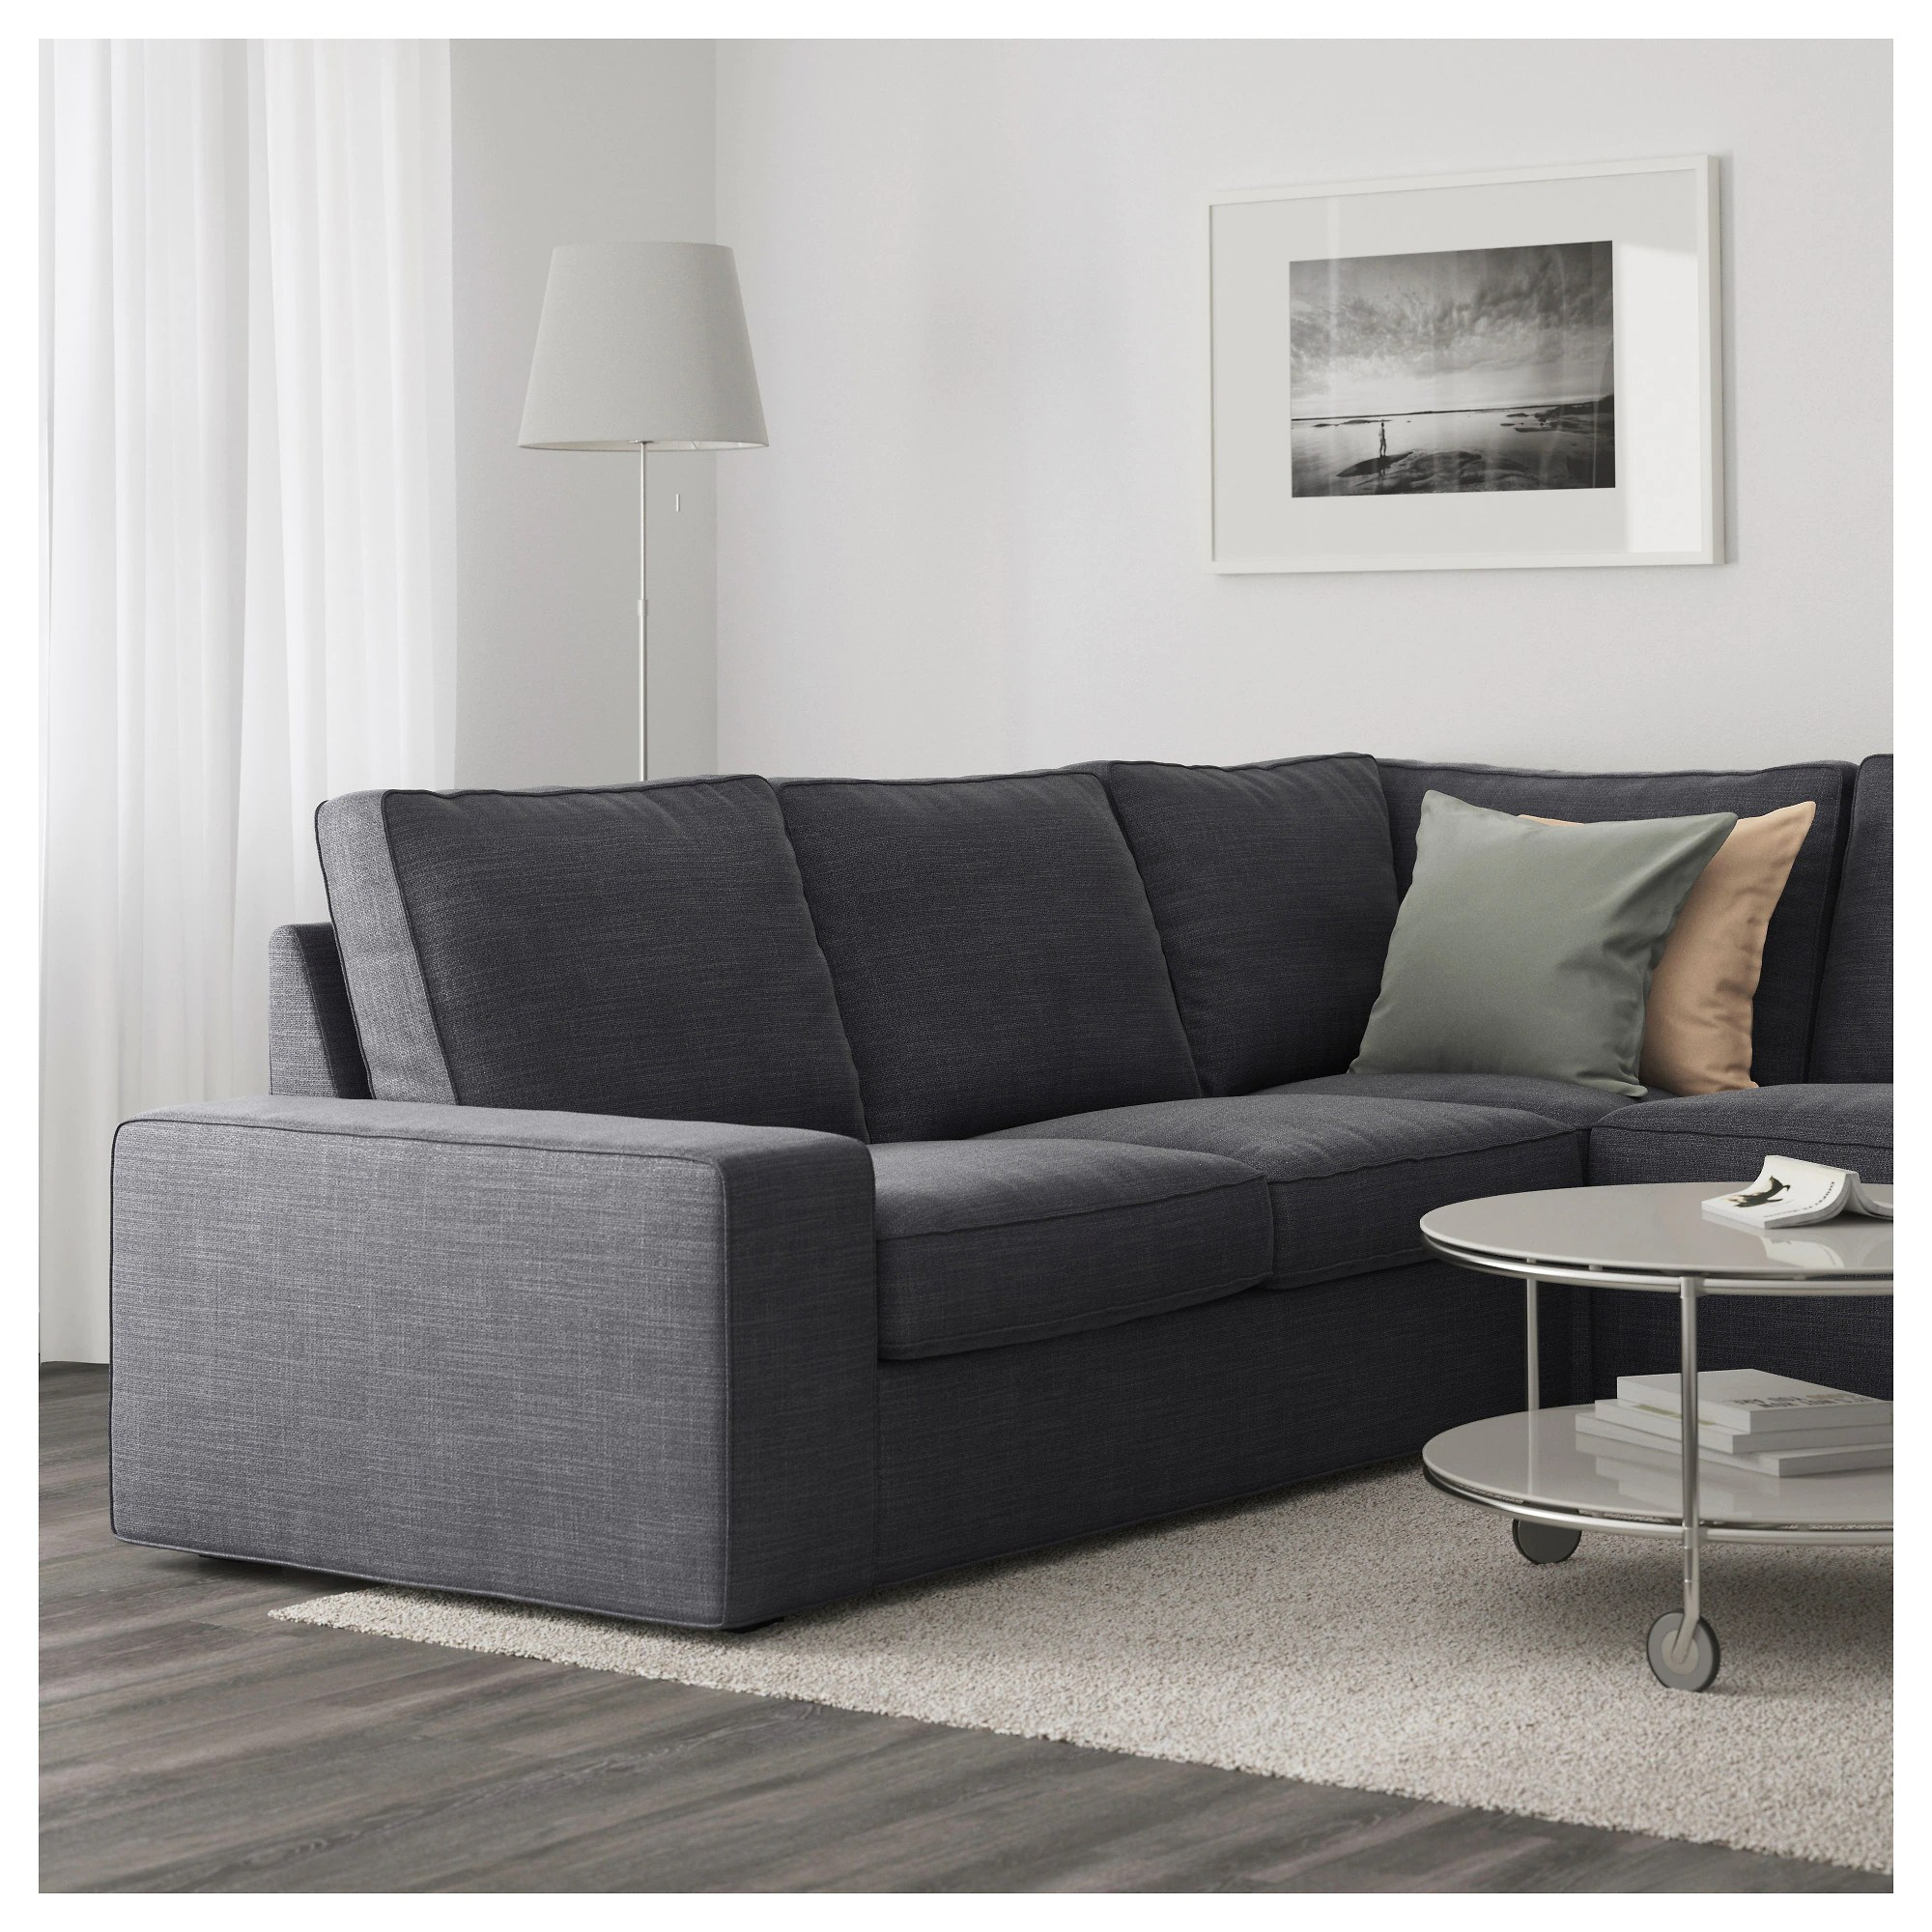 Kivik Sectional Kivik Sectional 5 Seat Corner Hillared Anthracite